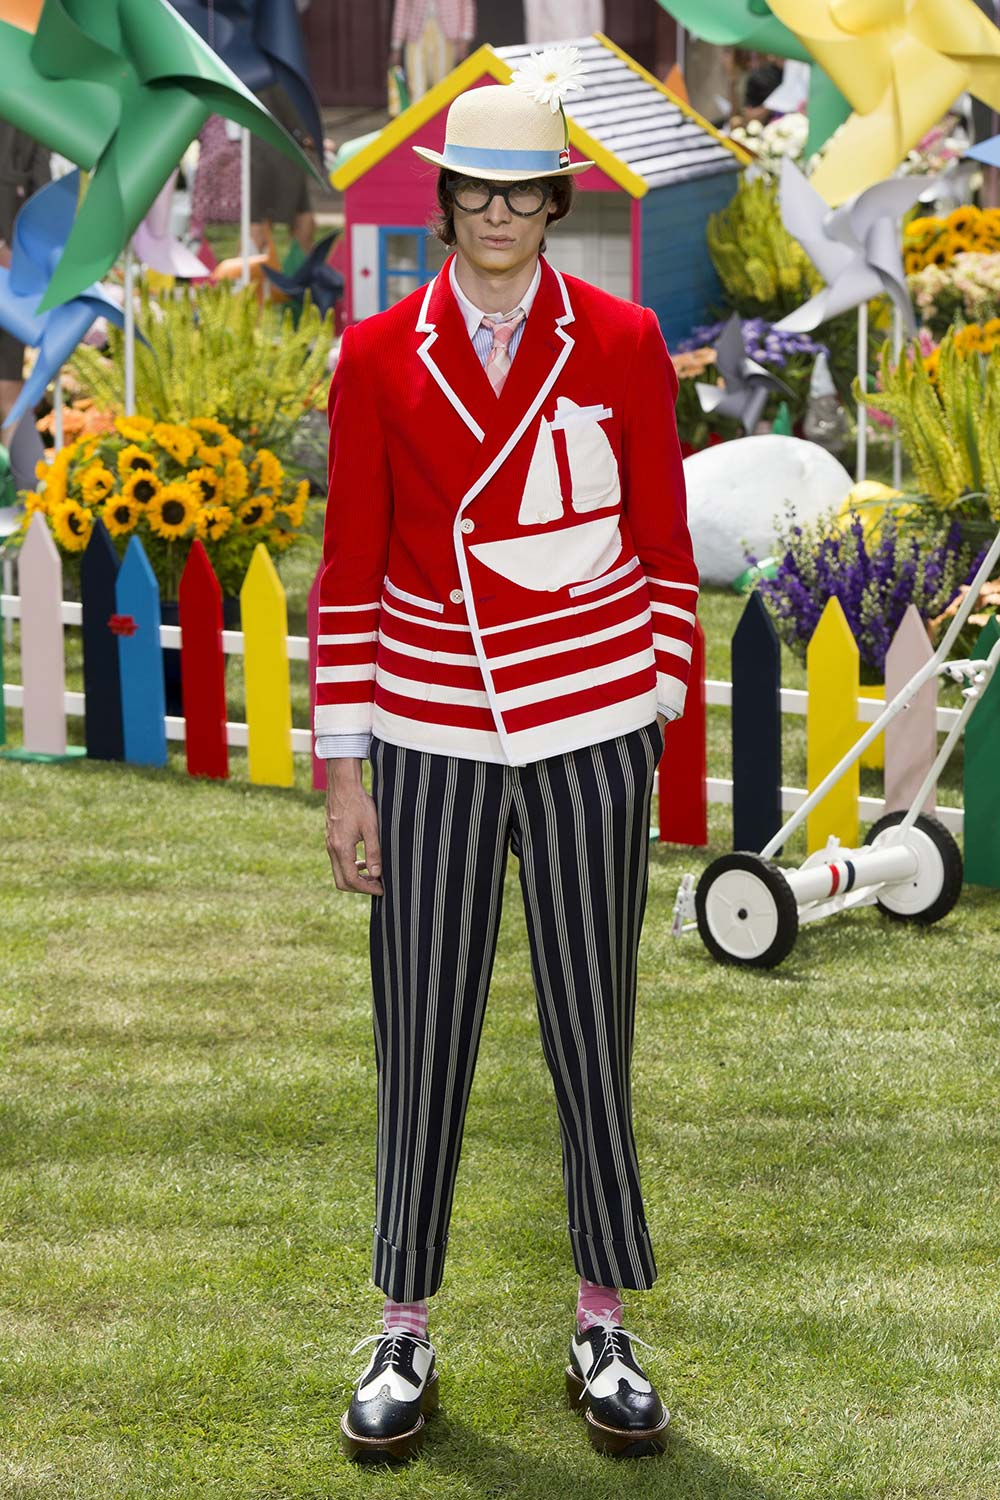 Thom Browne Spring Summer 2019 Presetnation in Paris at Paris Fa